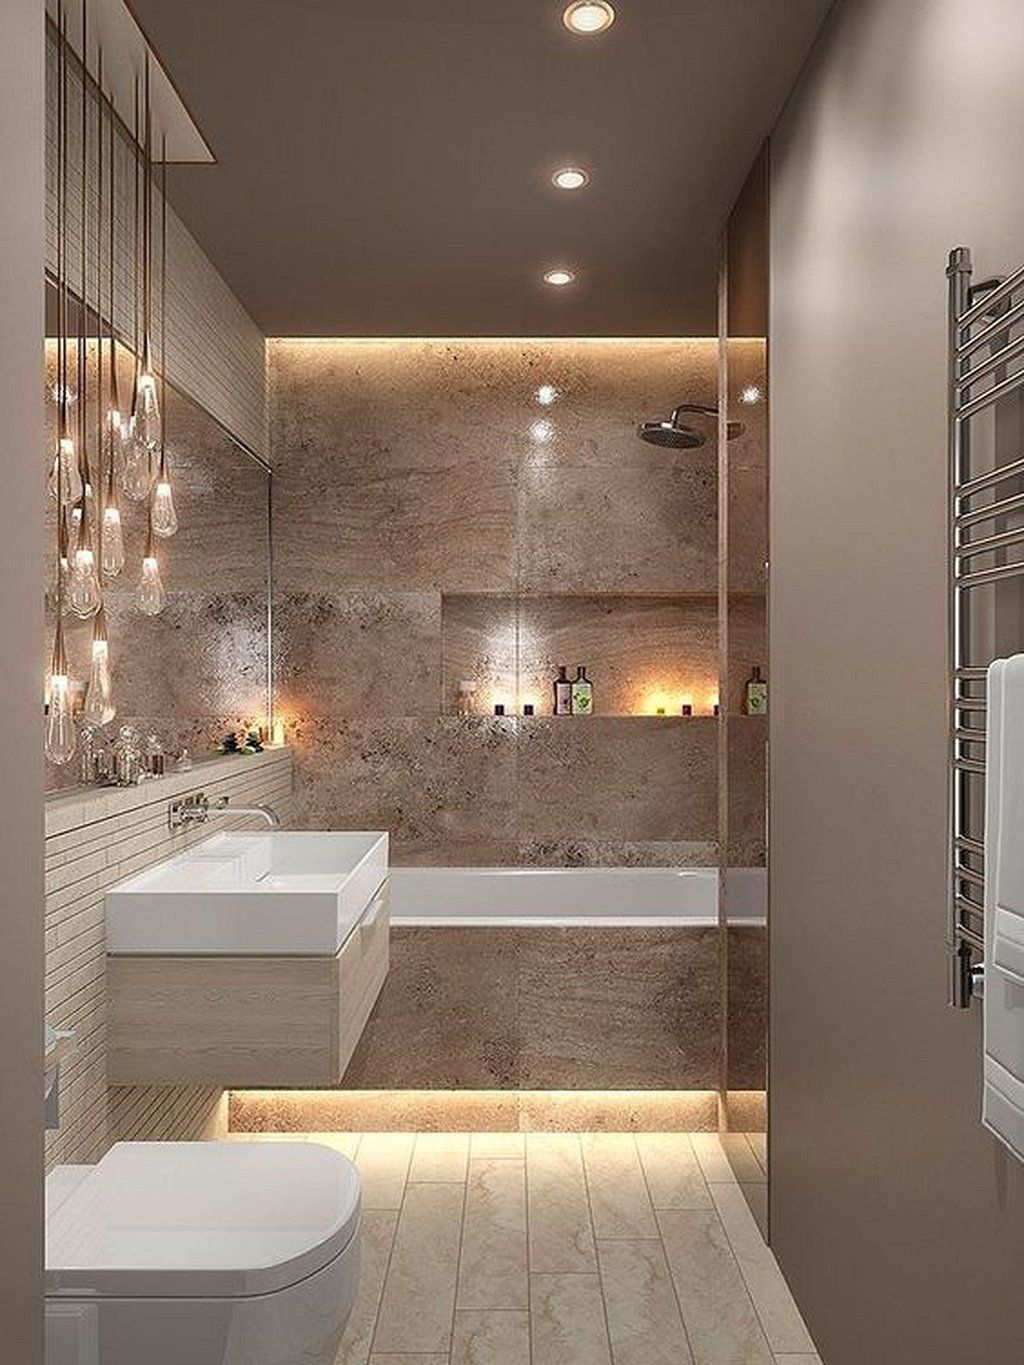 Luxury Bathroom Design And Decor Ideas 34